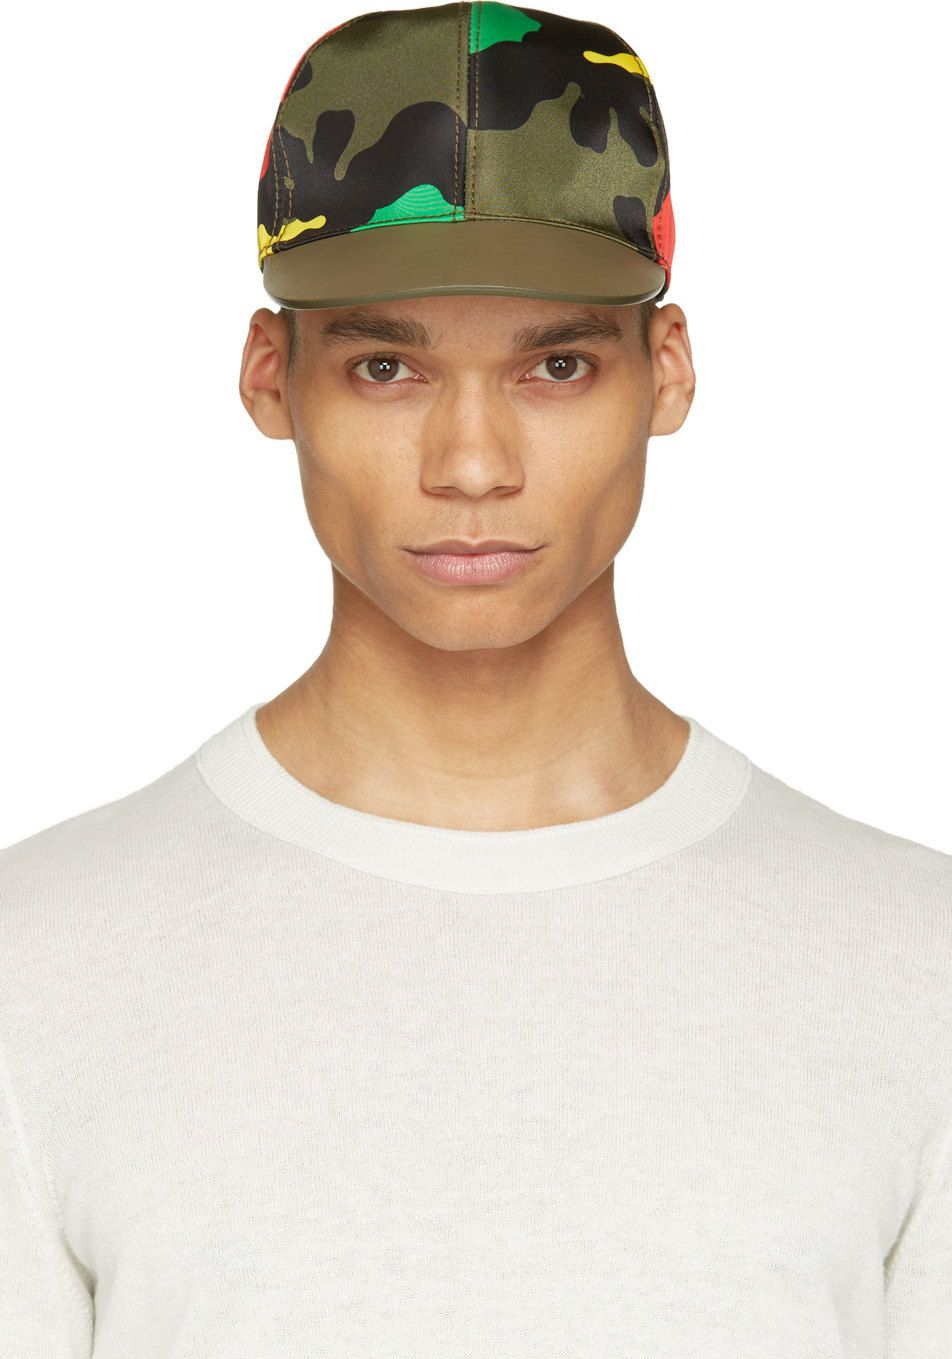 bf617ffc5d2 Valentino Green Psychedelic Camouflage Cap